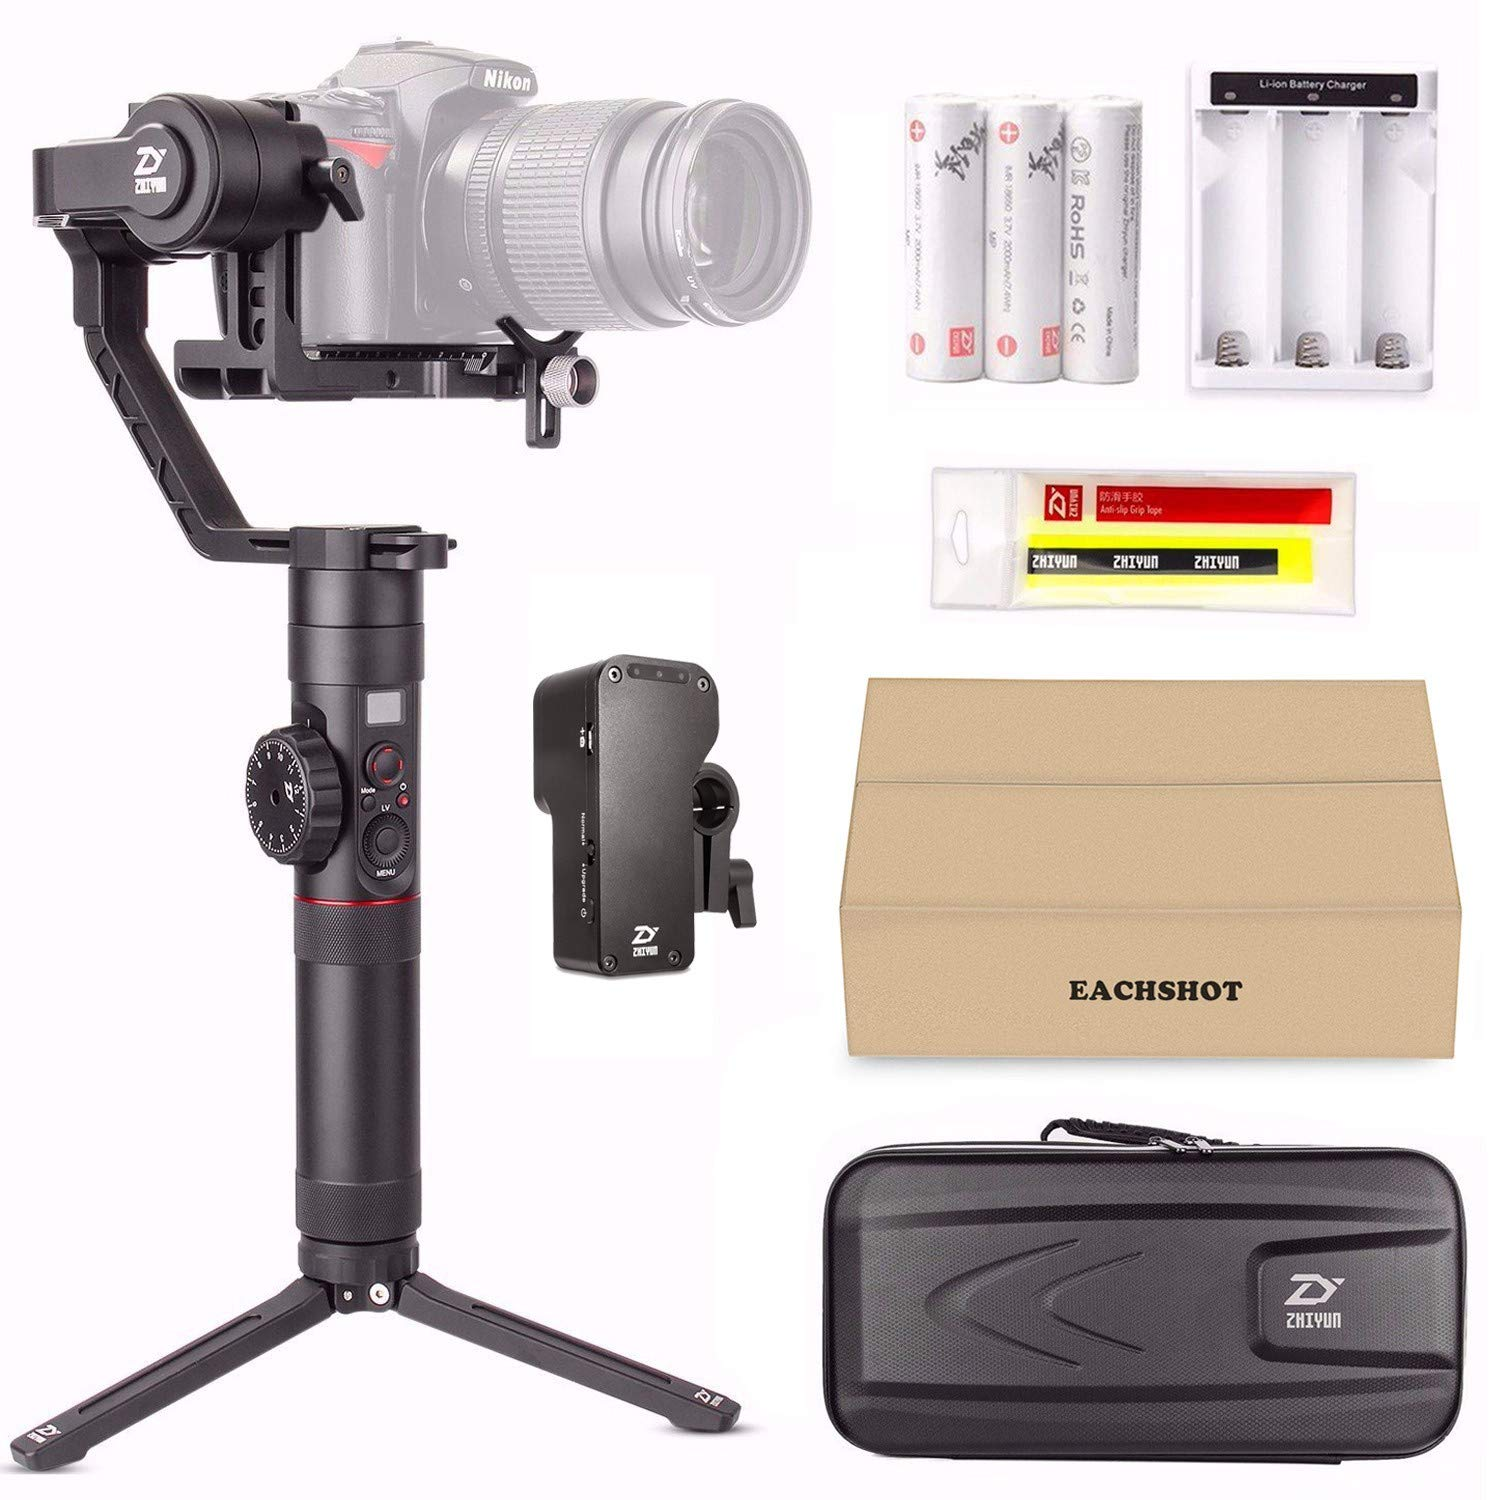 Zhiyun Crane 2 (with Servo Follow Focus) 3-Axis Handheld Gimbal Stabilizer 7lb Payload OLED Display 18hrs Runtime Toolless Balance Adjustment for Camera Weighing 1.1lb to 7lb Zhiyun Crane-2 by zhi yun